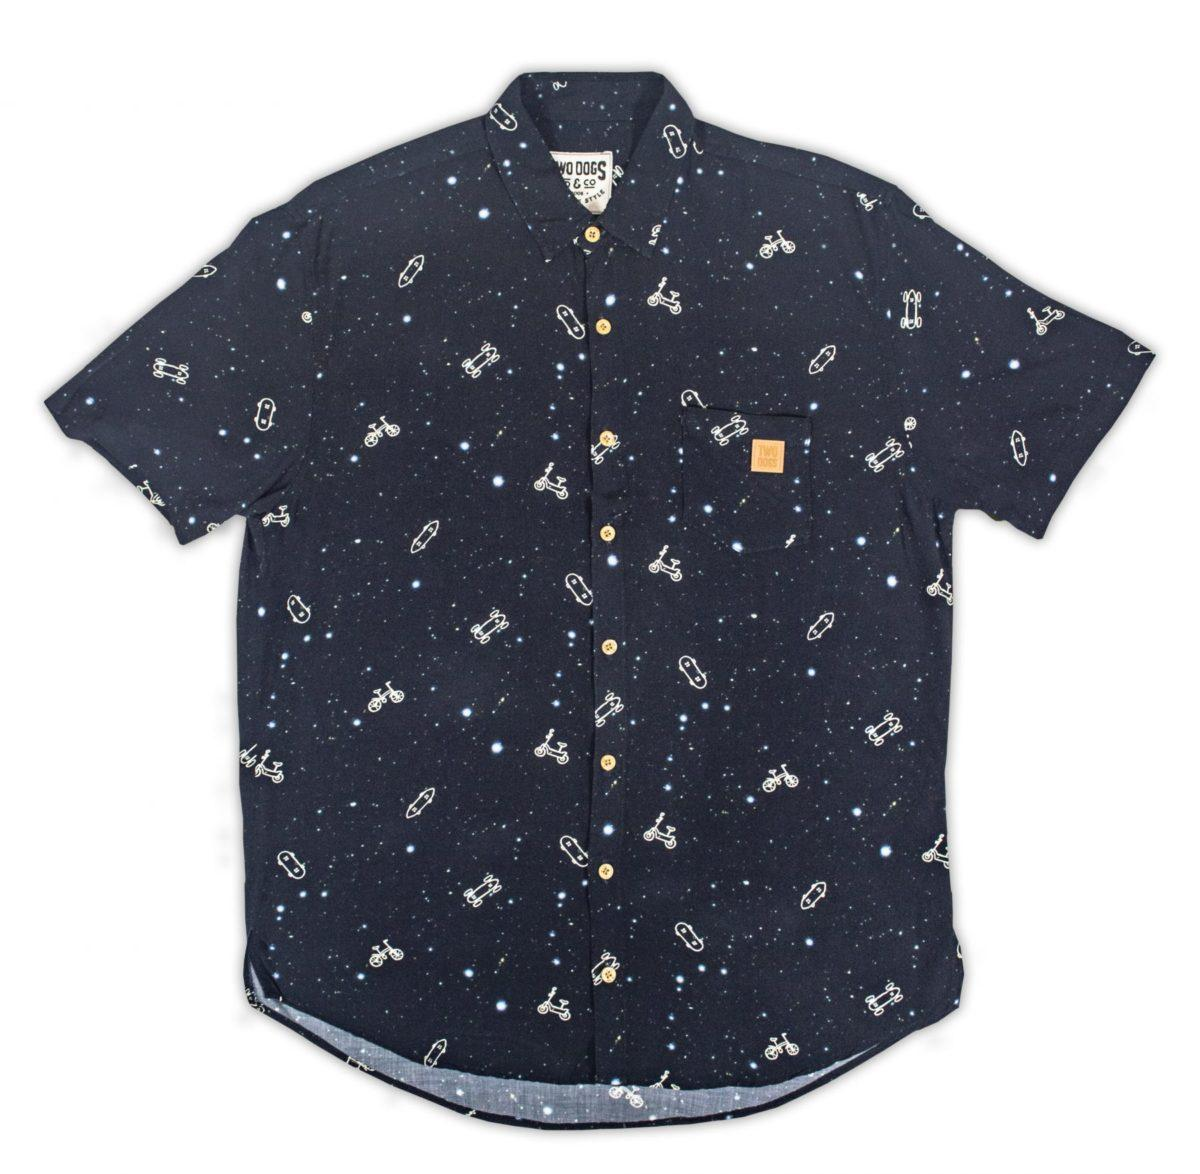 Camisa Universo Two Dogs - G